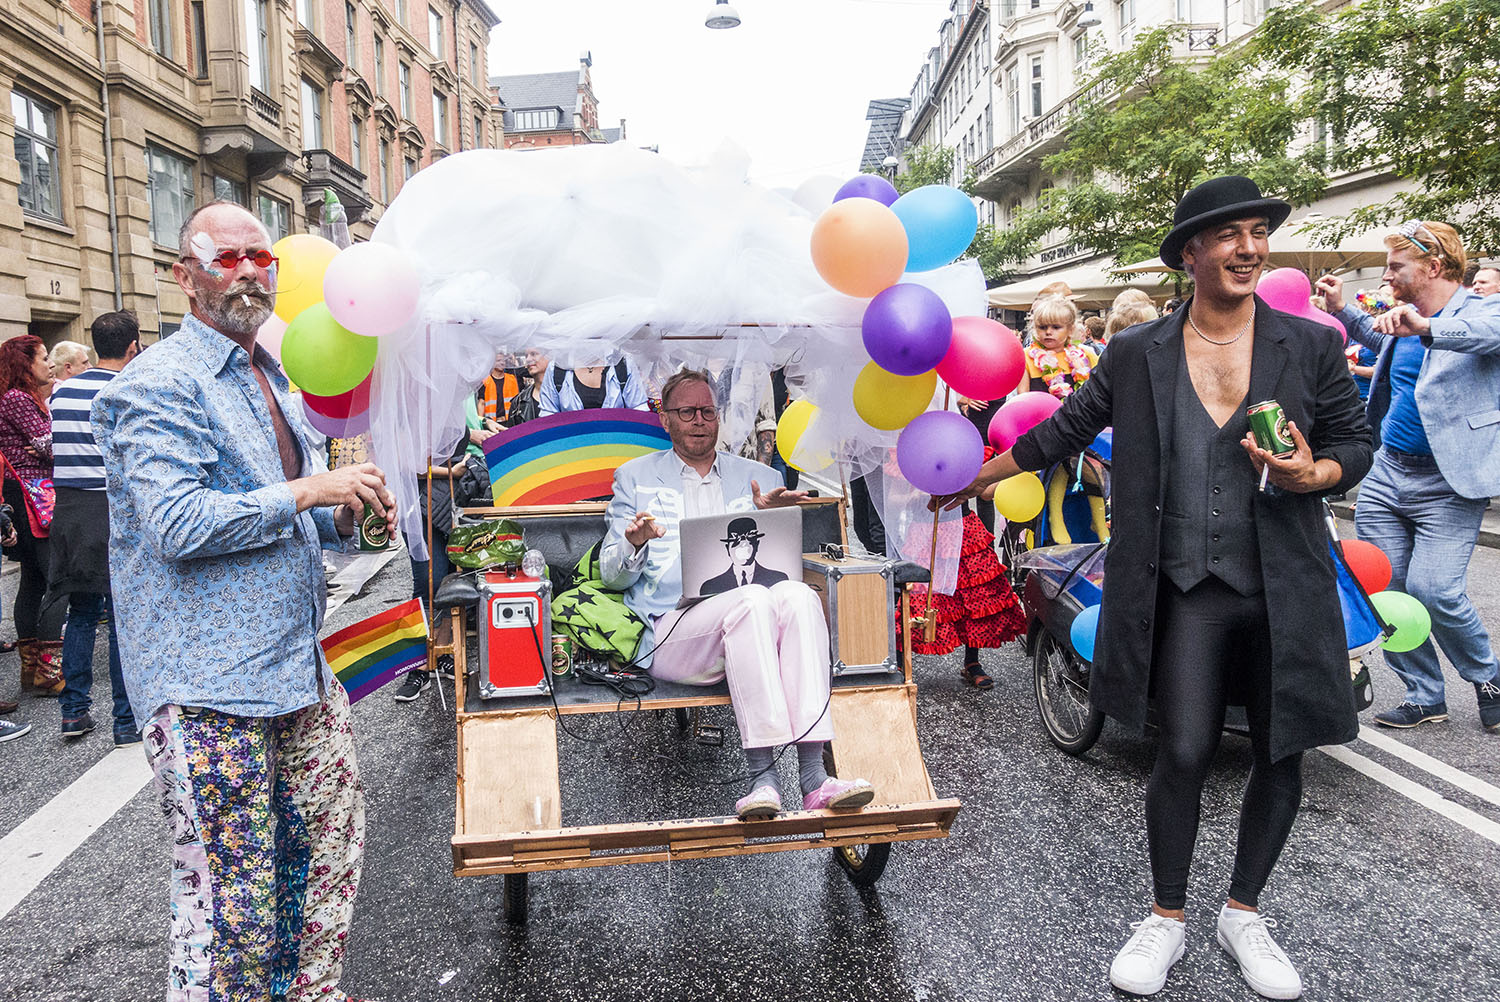 CphPride2016_HelenaLundquist_blog_32